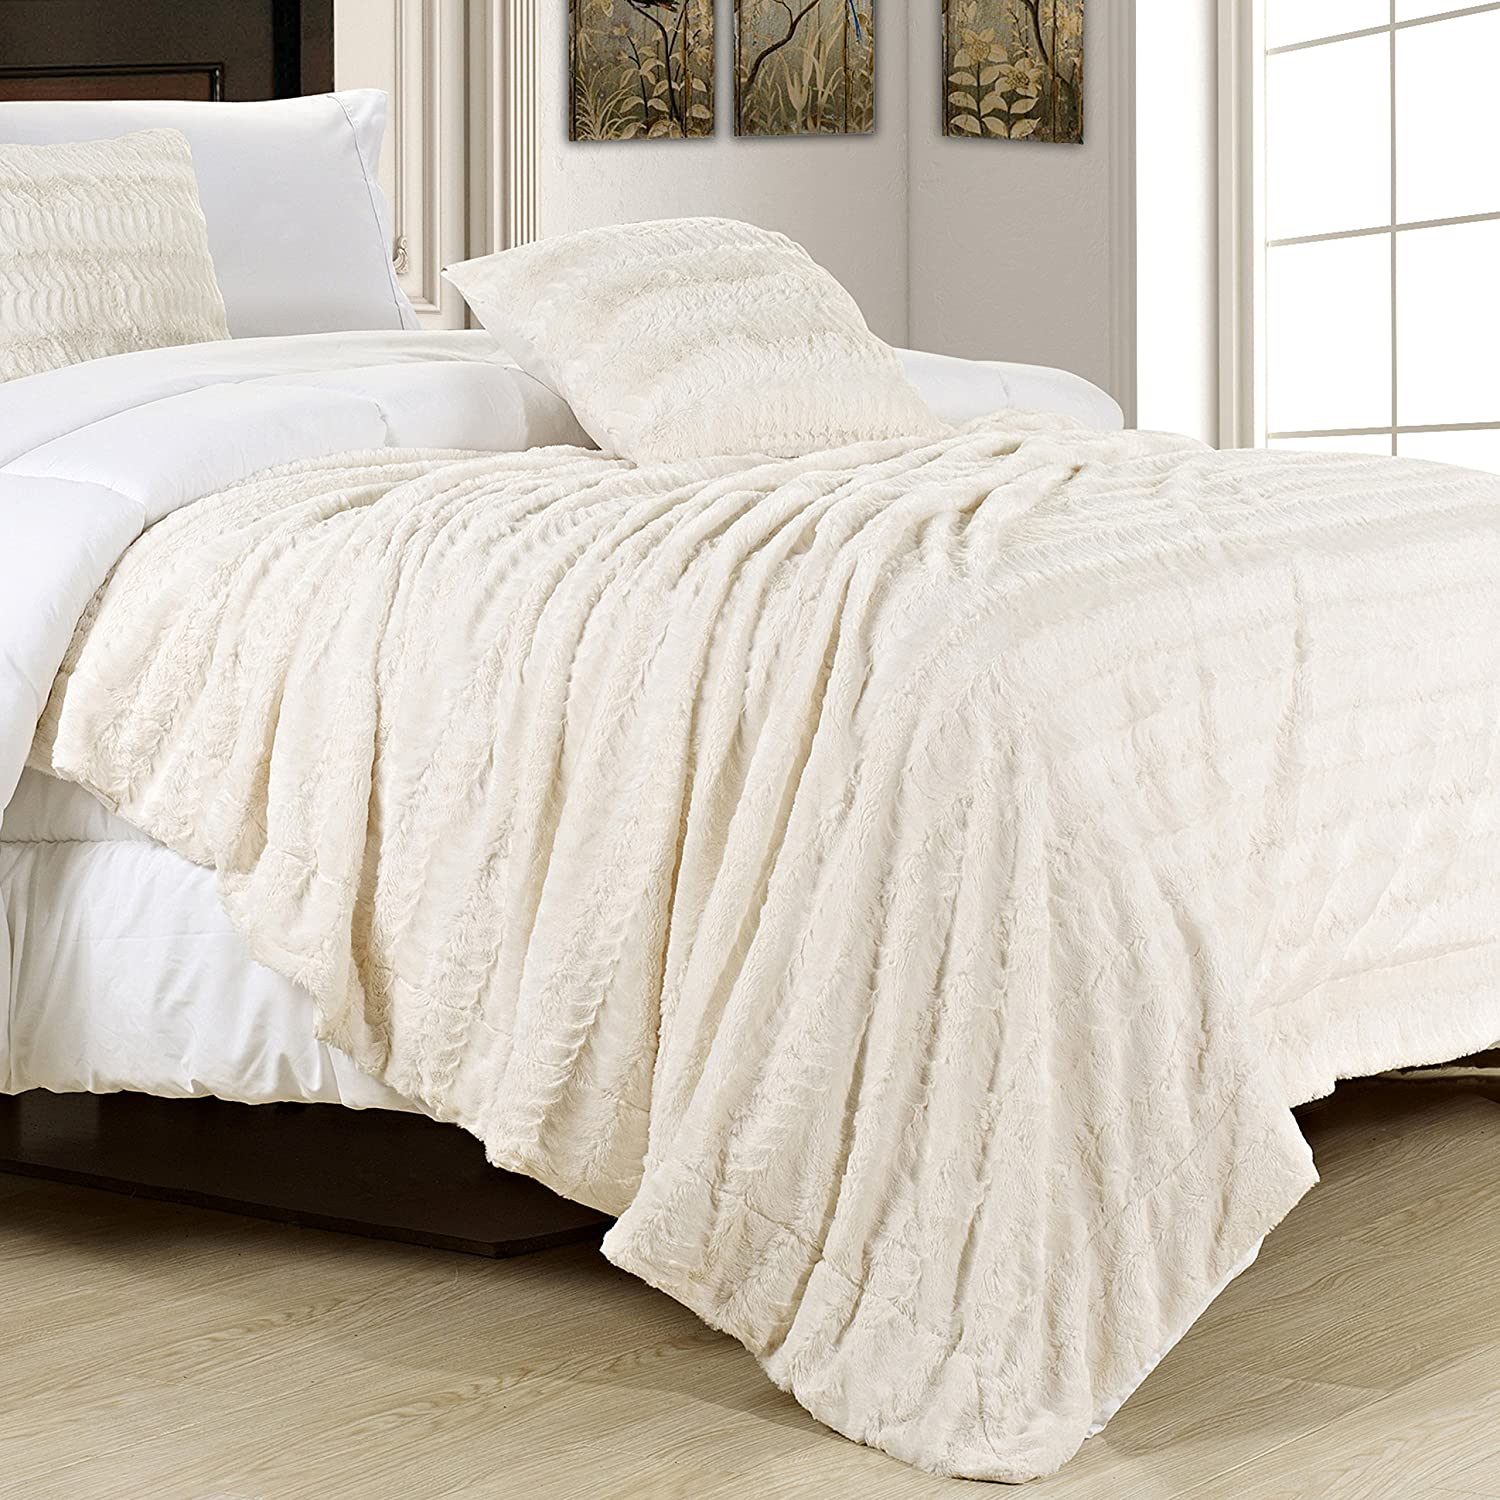 Swift Home Micro-Mink Full/Queen Faux Fur Blanket, Cream